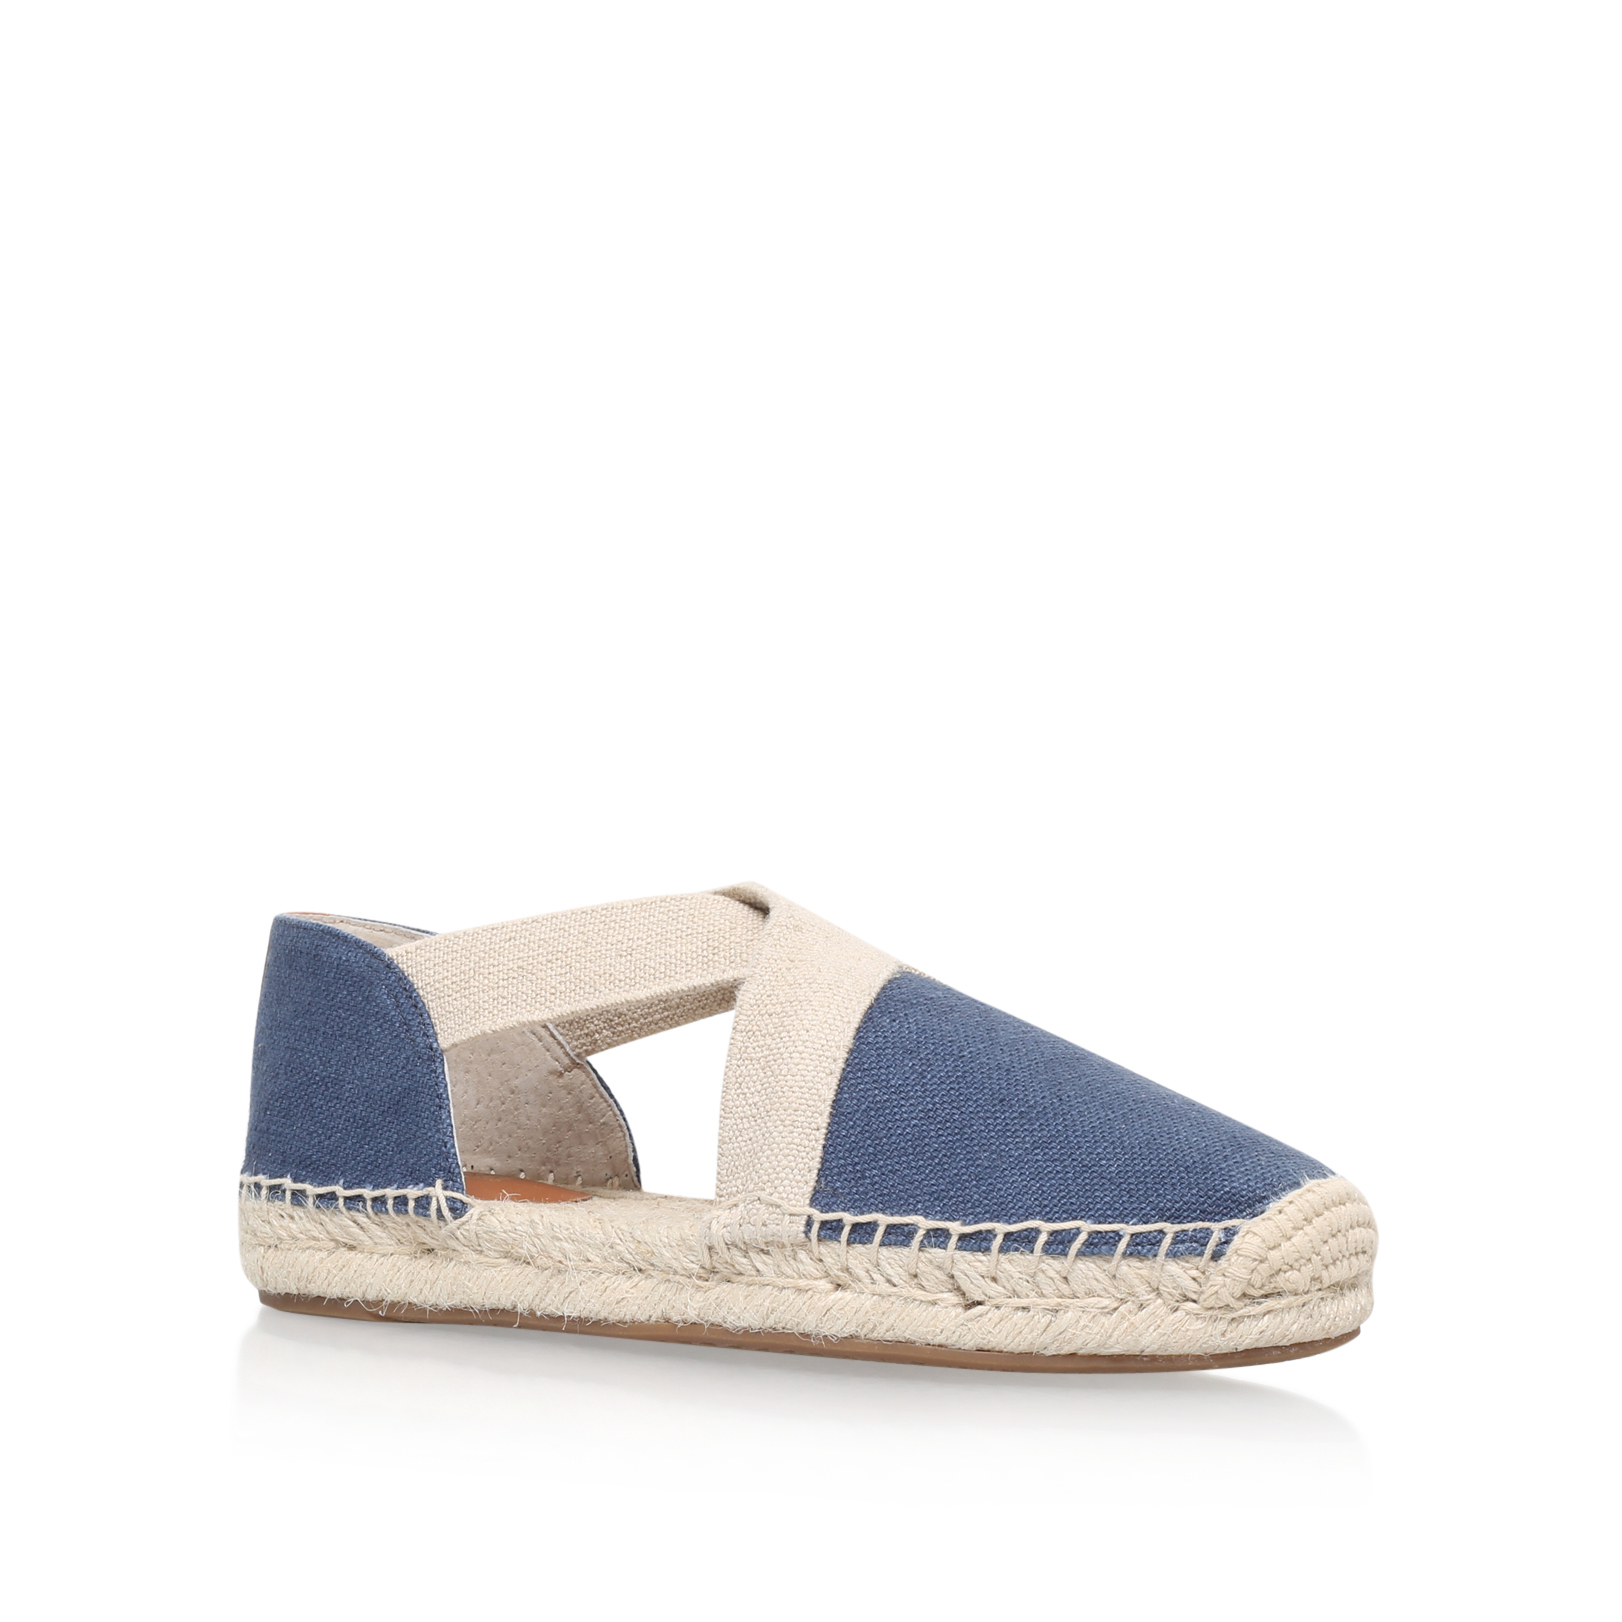 michael michael kors dana espadrille in blue navy save 55 lyst. Black Bedroom Furniture Sets. Home Design Ideas